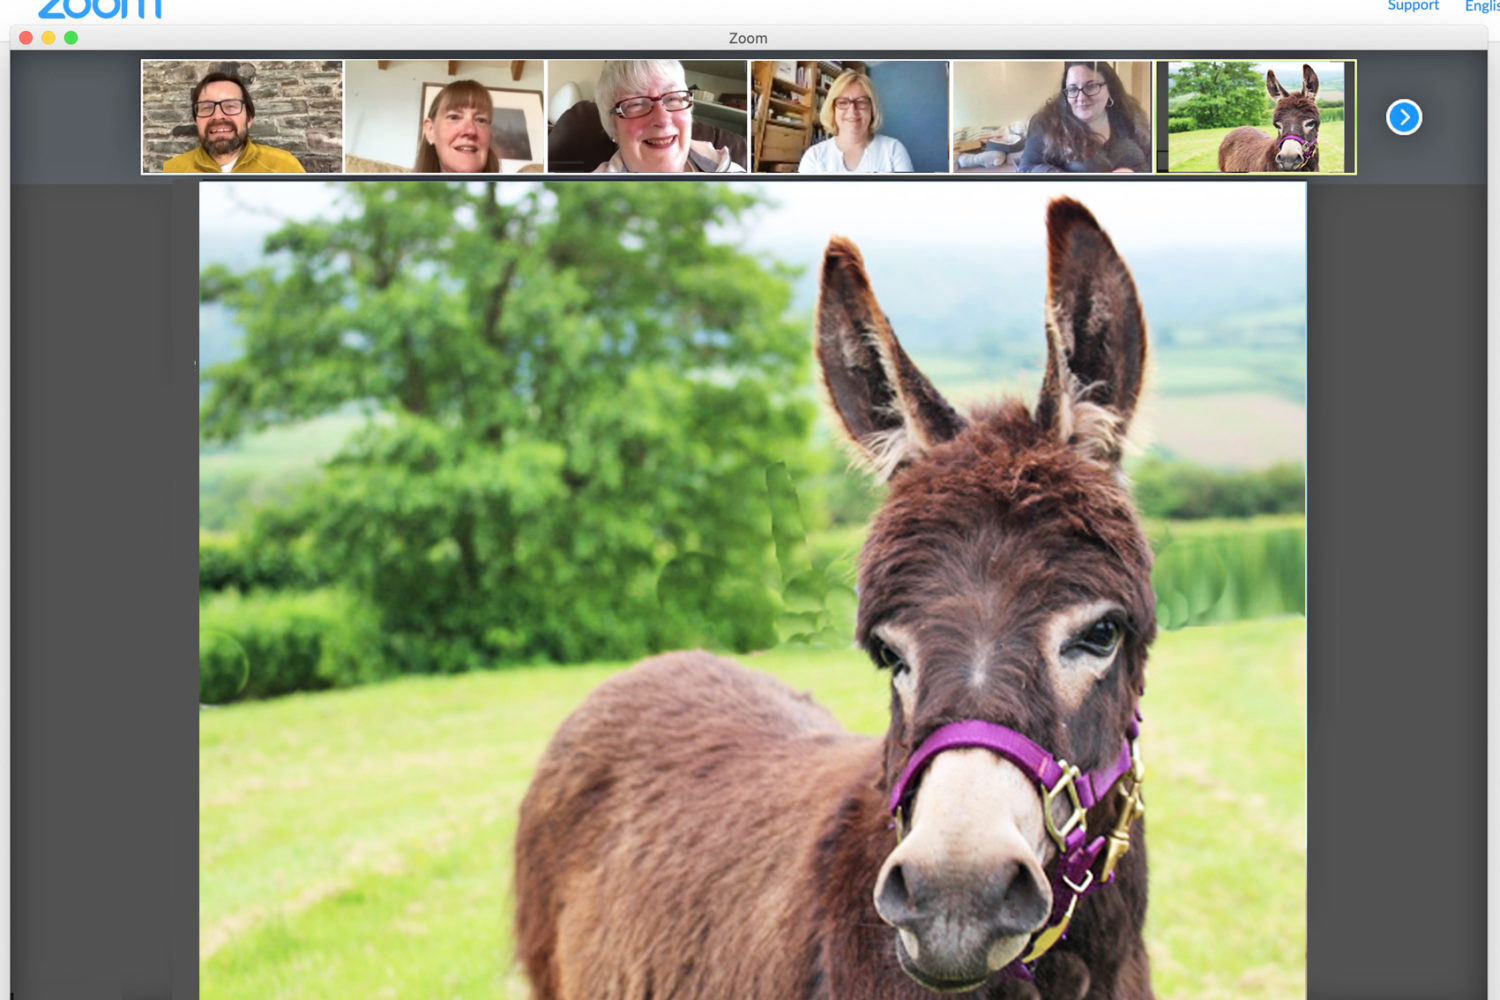 have fun at your Zoom meeting with a mini donkey attending